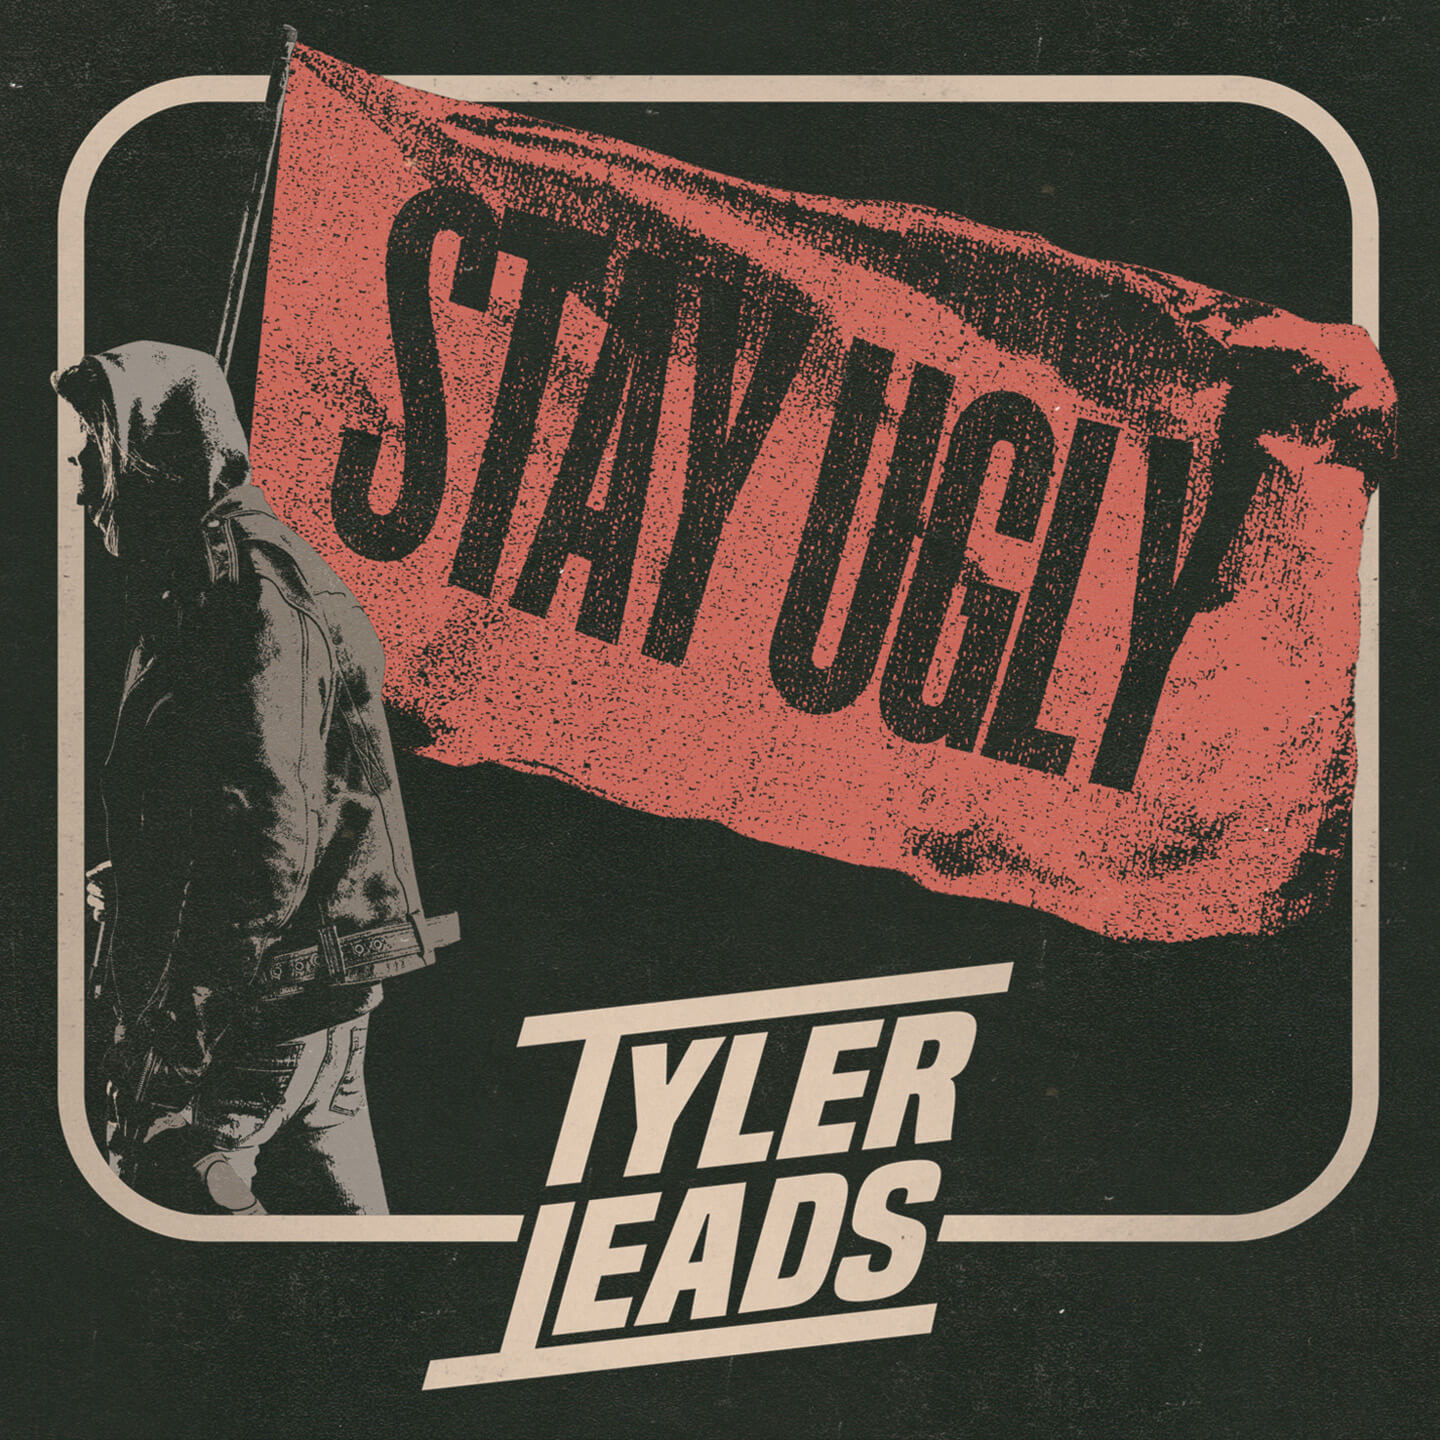 Bundle: Stay Ugly - EP (physical CD Digipack) + Call Of The Wild - Single (digital download)